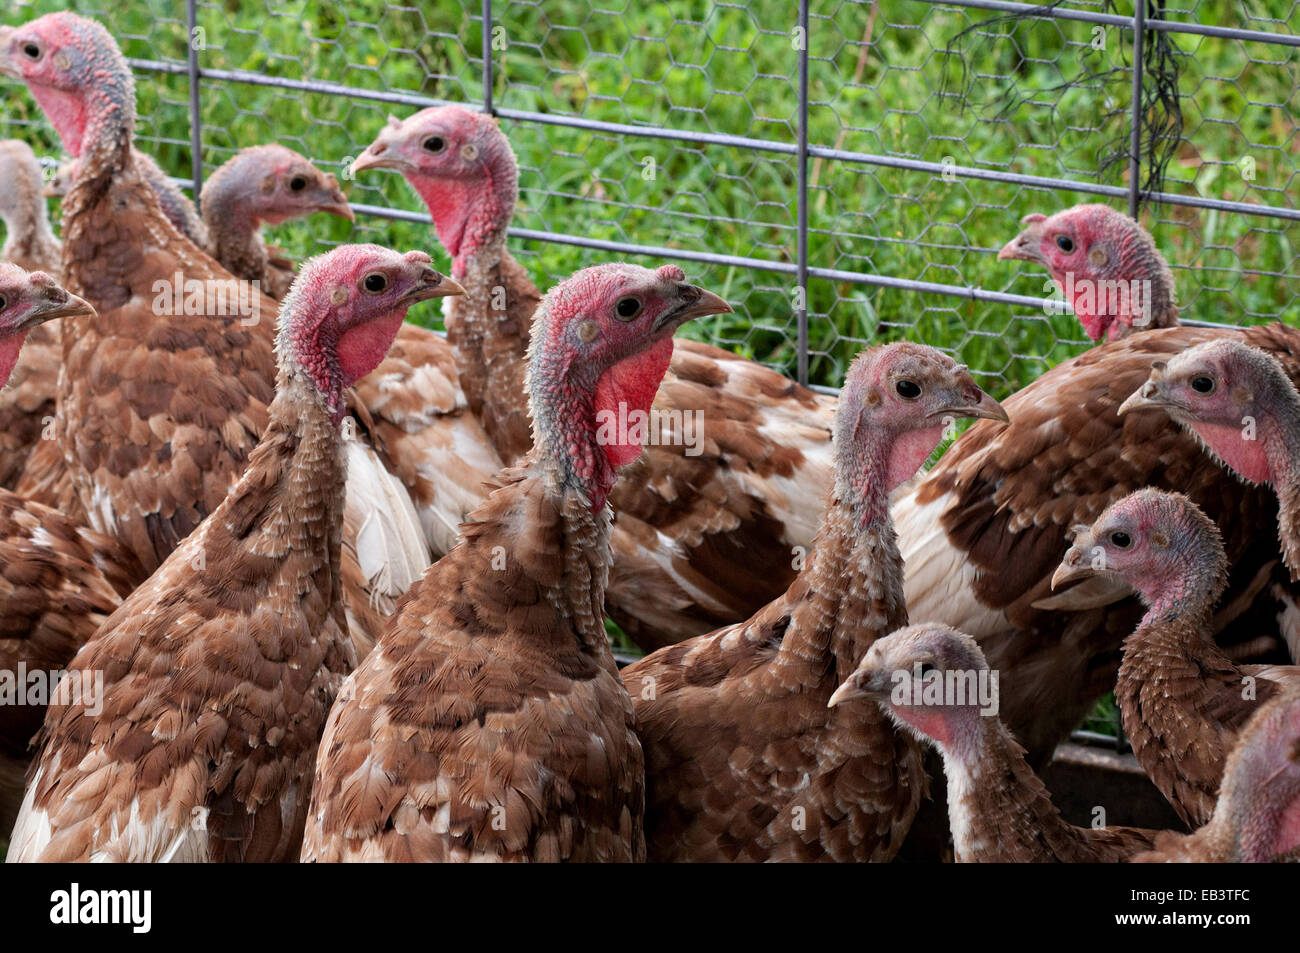 Turkey poults on the Ekonk Turkey Farm November 24, 2014 in Moosup, CT. More than 46 million turkeys will be consumed - Stock Image